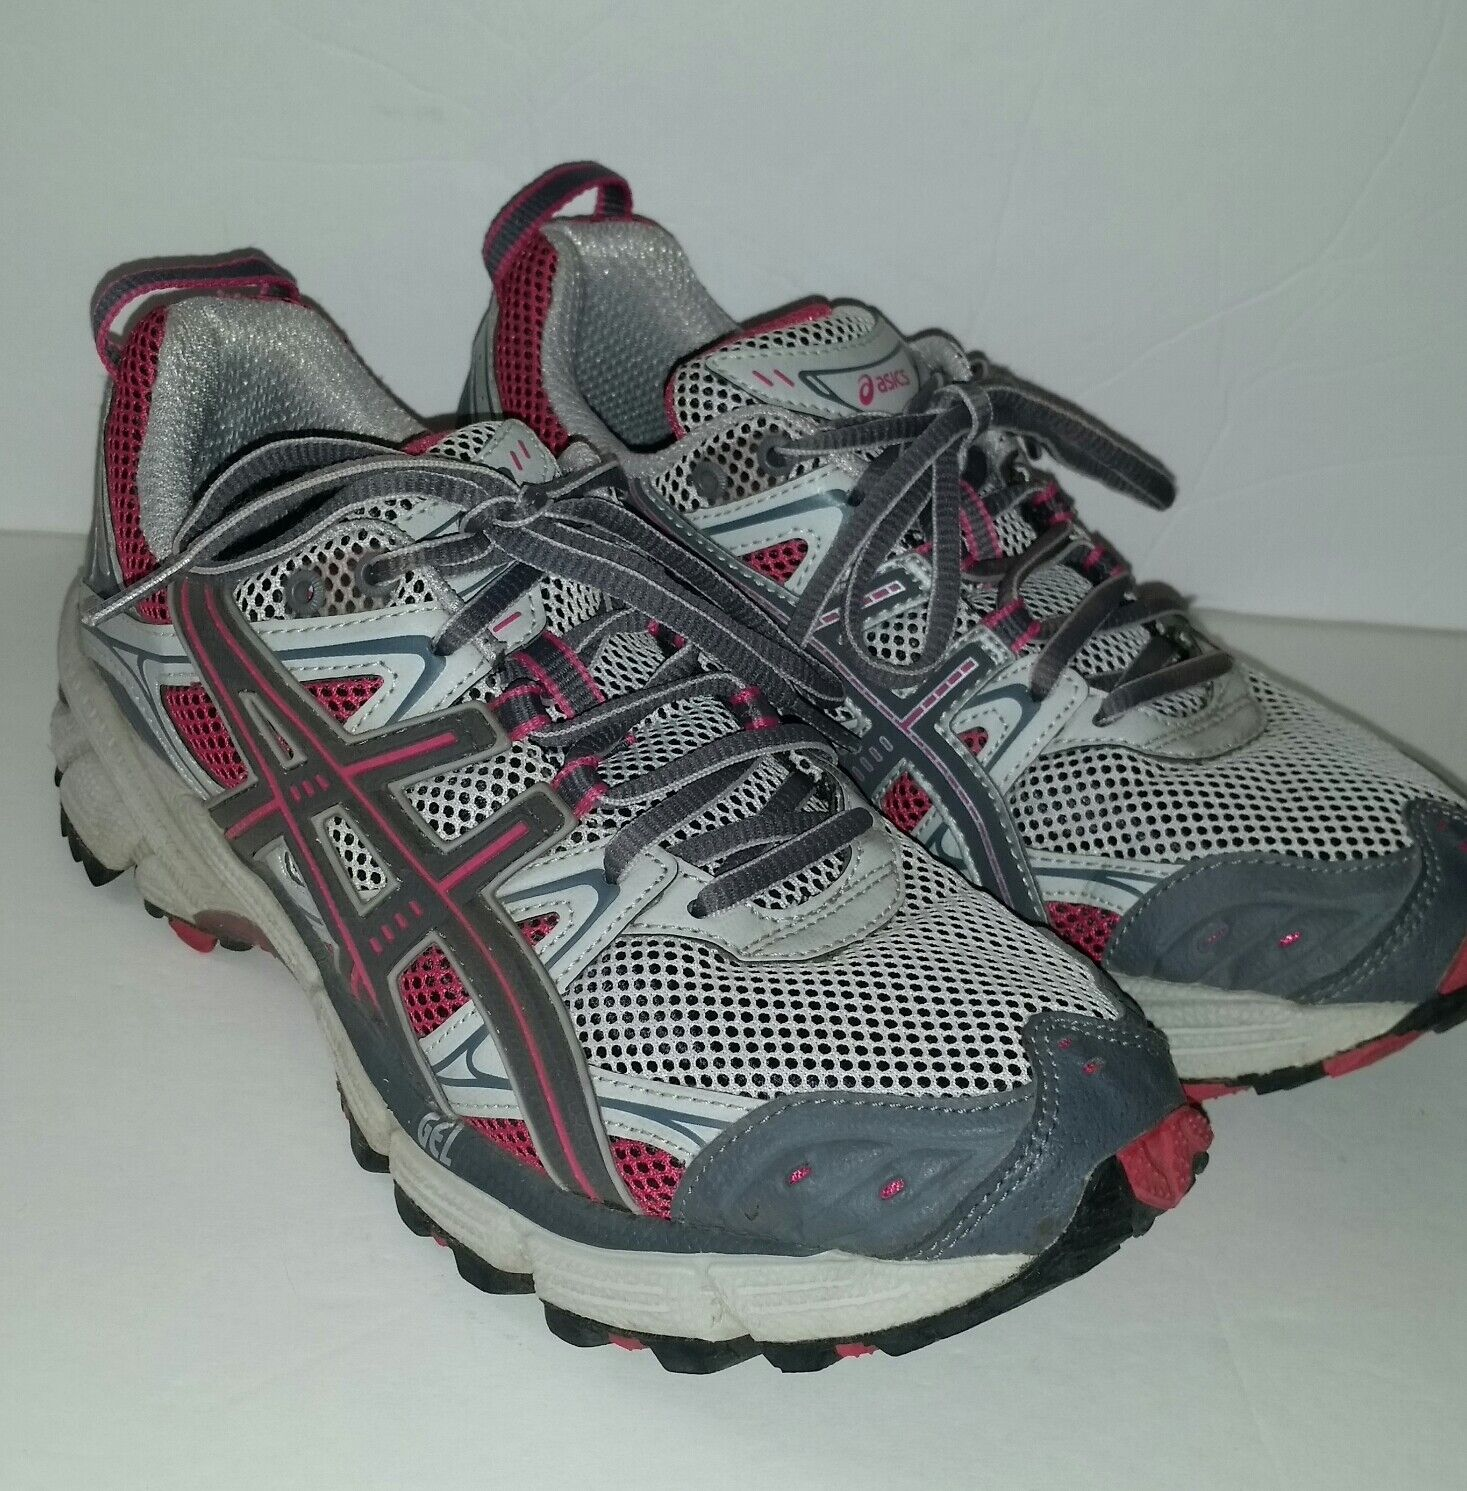 Asics Gel Kahana Trail Running Shoes Women's 8 Trainers Grey Pink Hiking EUC Comfortable and good-looking